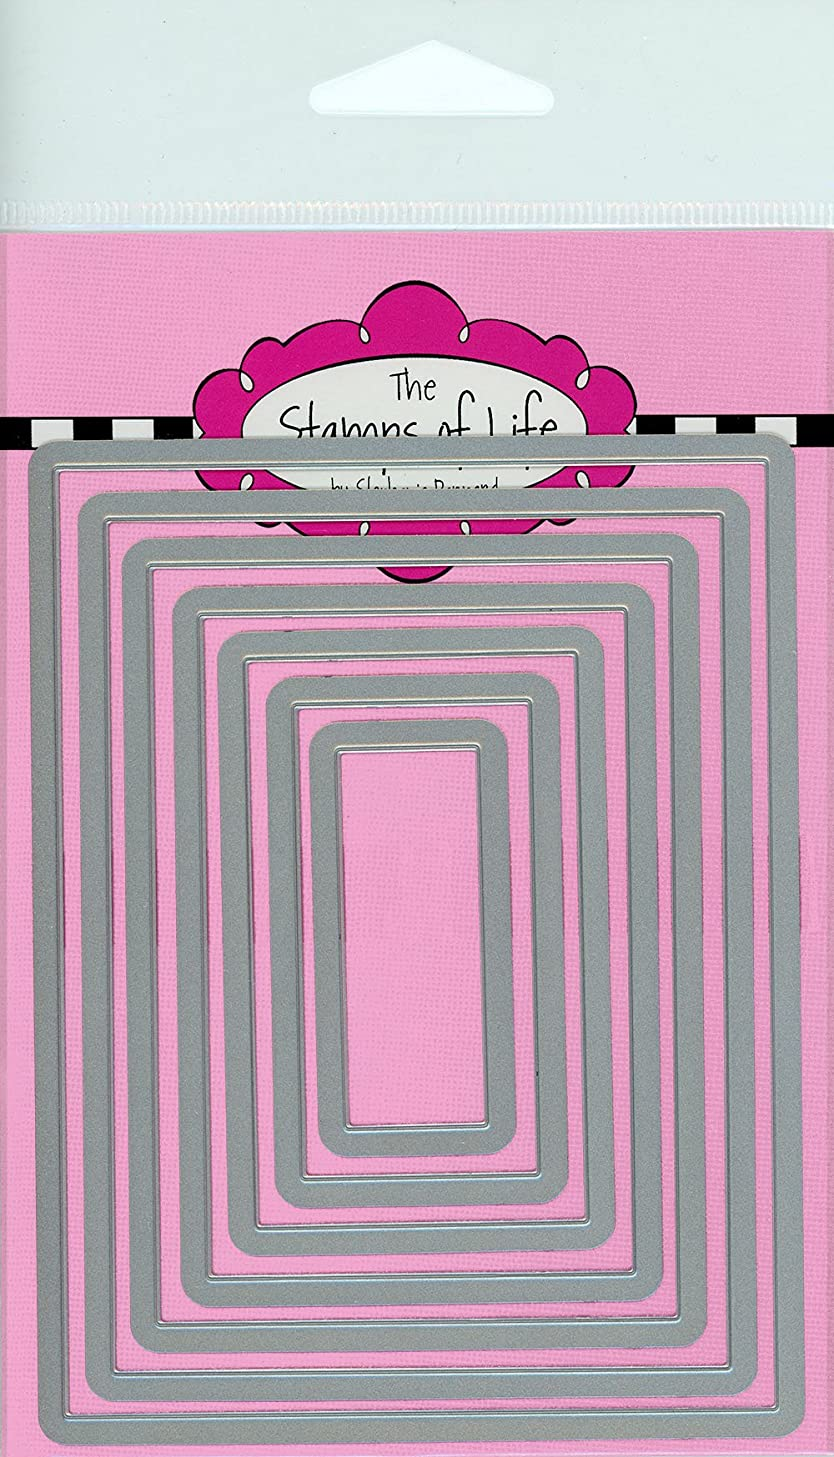 The Stamps of Life Rectangles Die Cuts for Card Making Scrapbooking by Stephanie Barnard -Borders